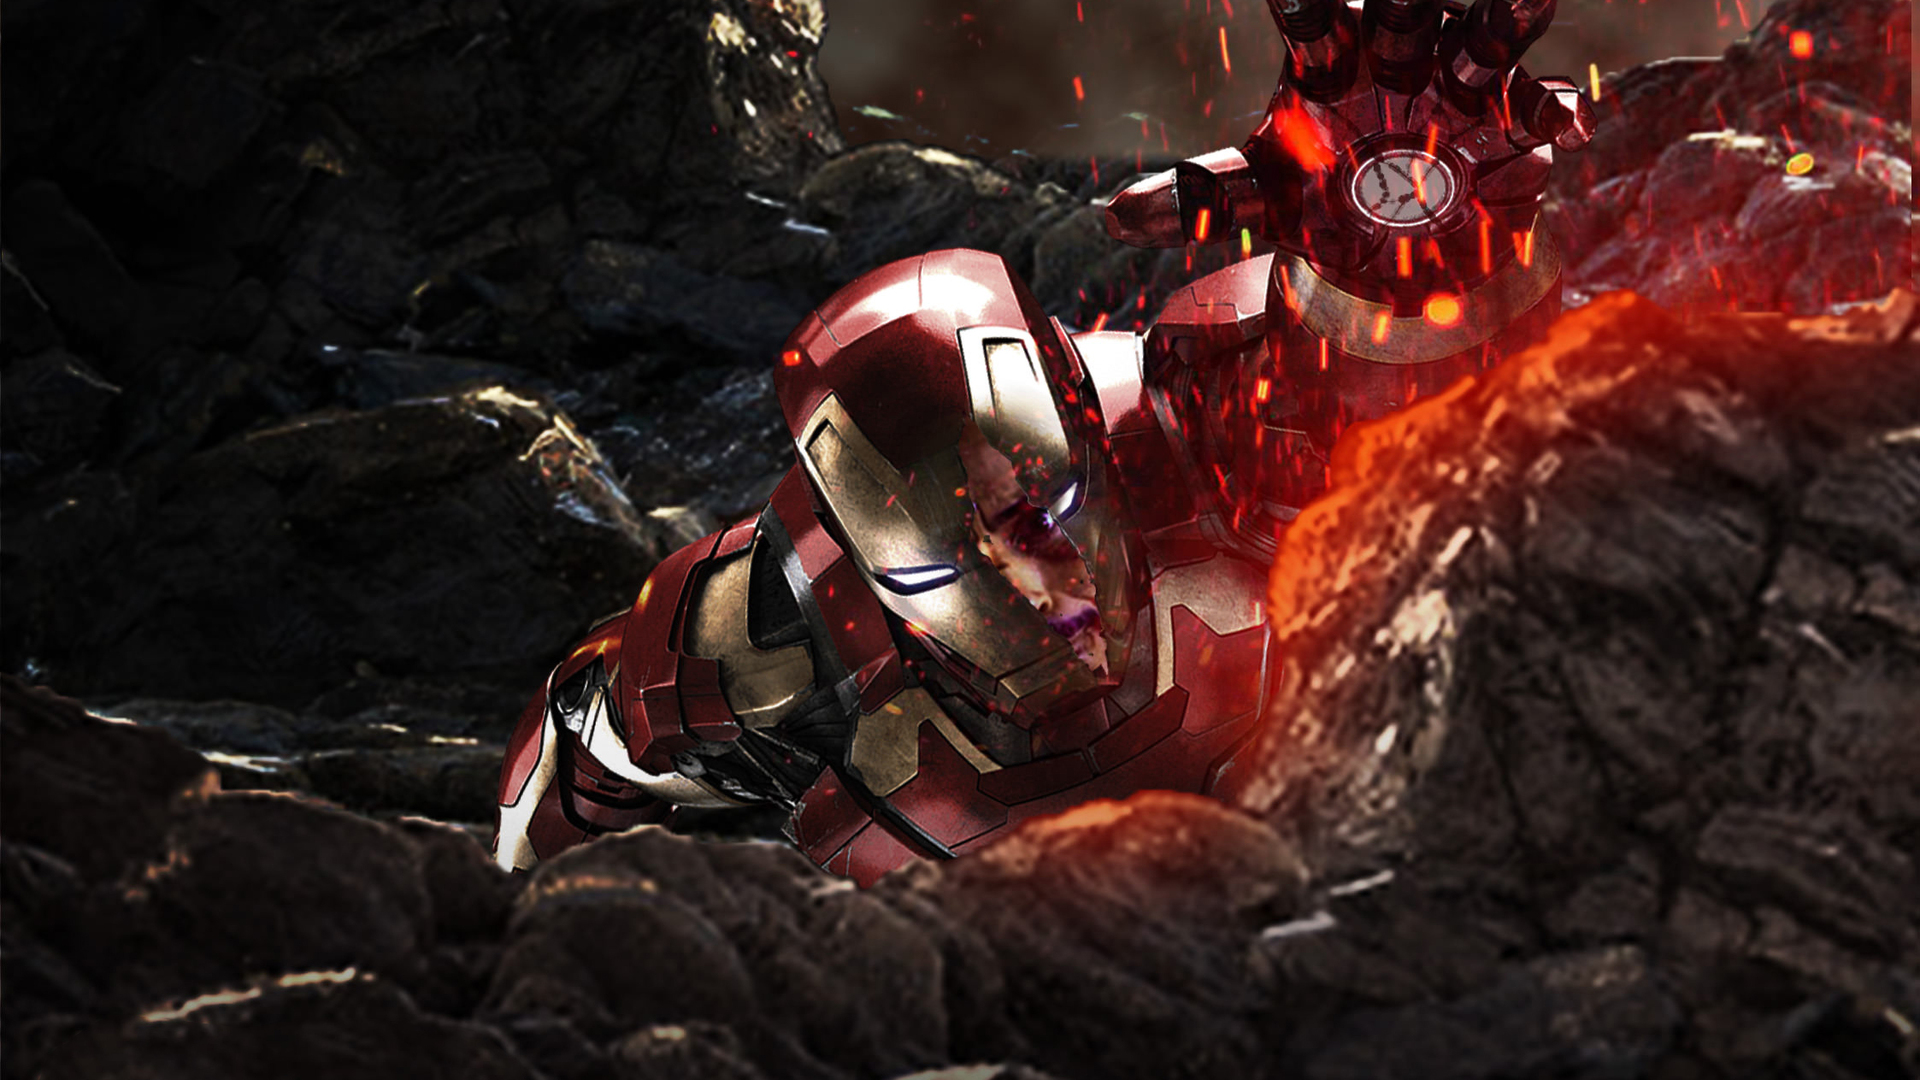 10 Latest Video Game Wallpapers 2560x1440 Full Hd 1080p: 1920x1080 Iron Man In Avengers Infinity War Laptop Full HD